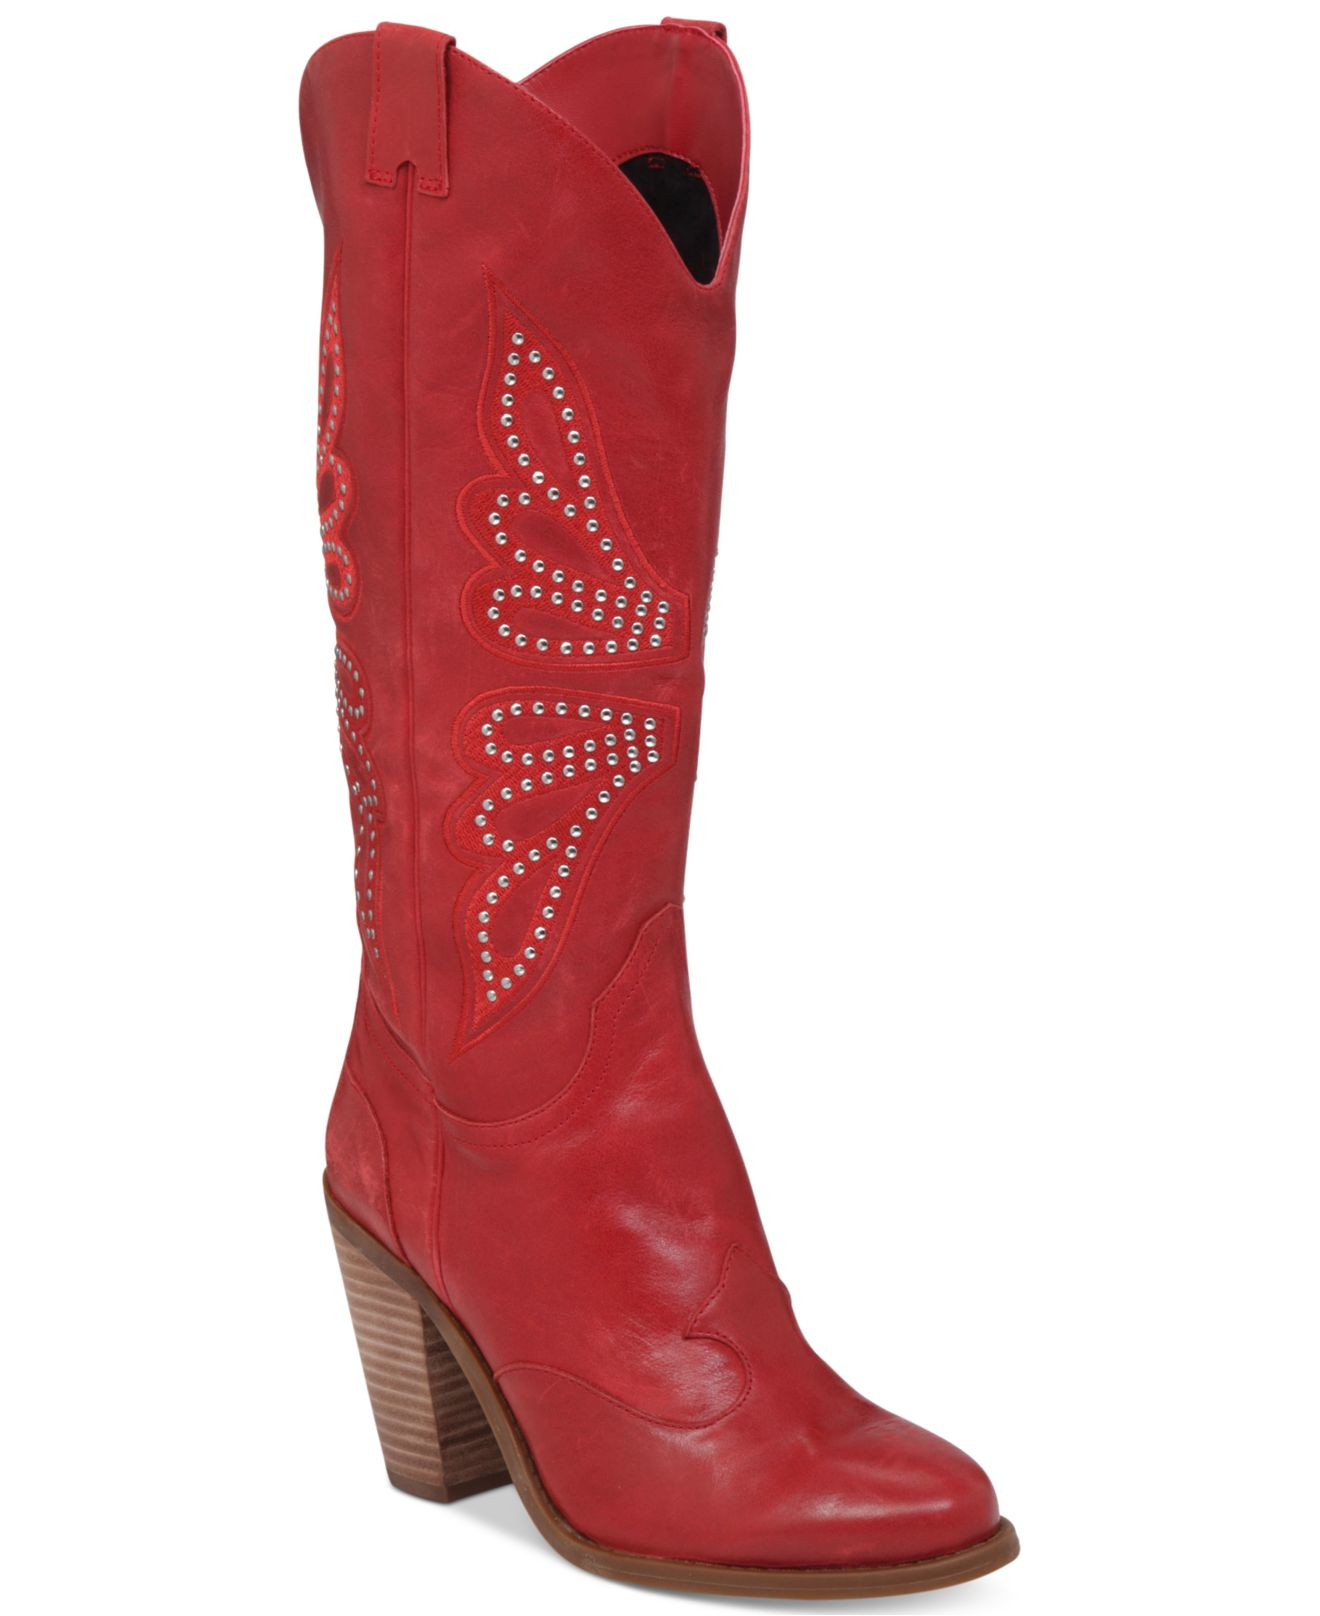 Jessica simpson Caralee Western Boots in Red | Lyst